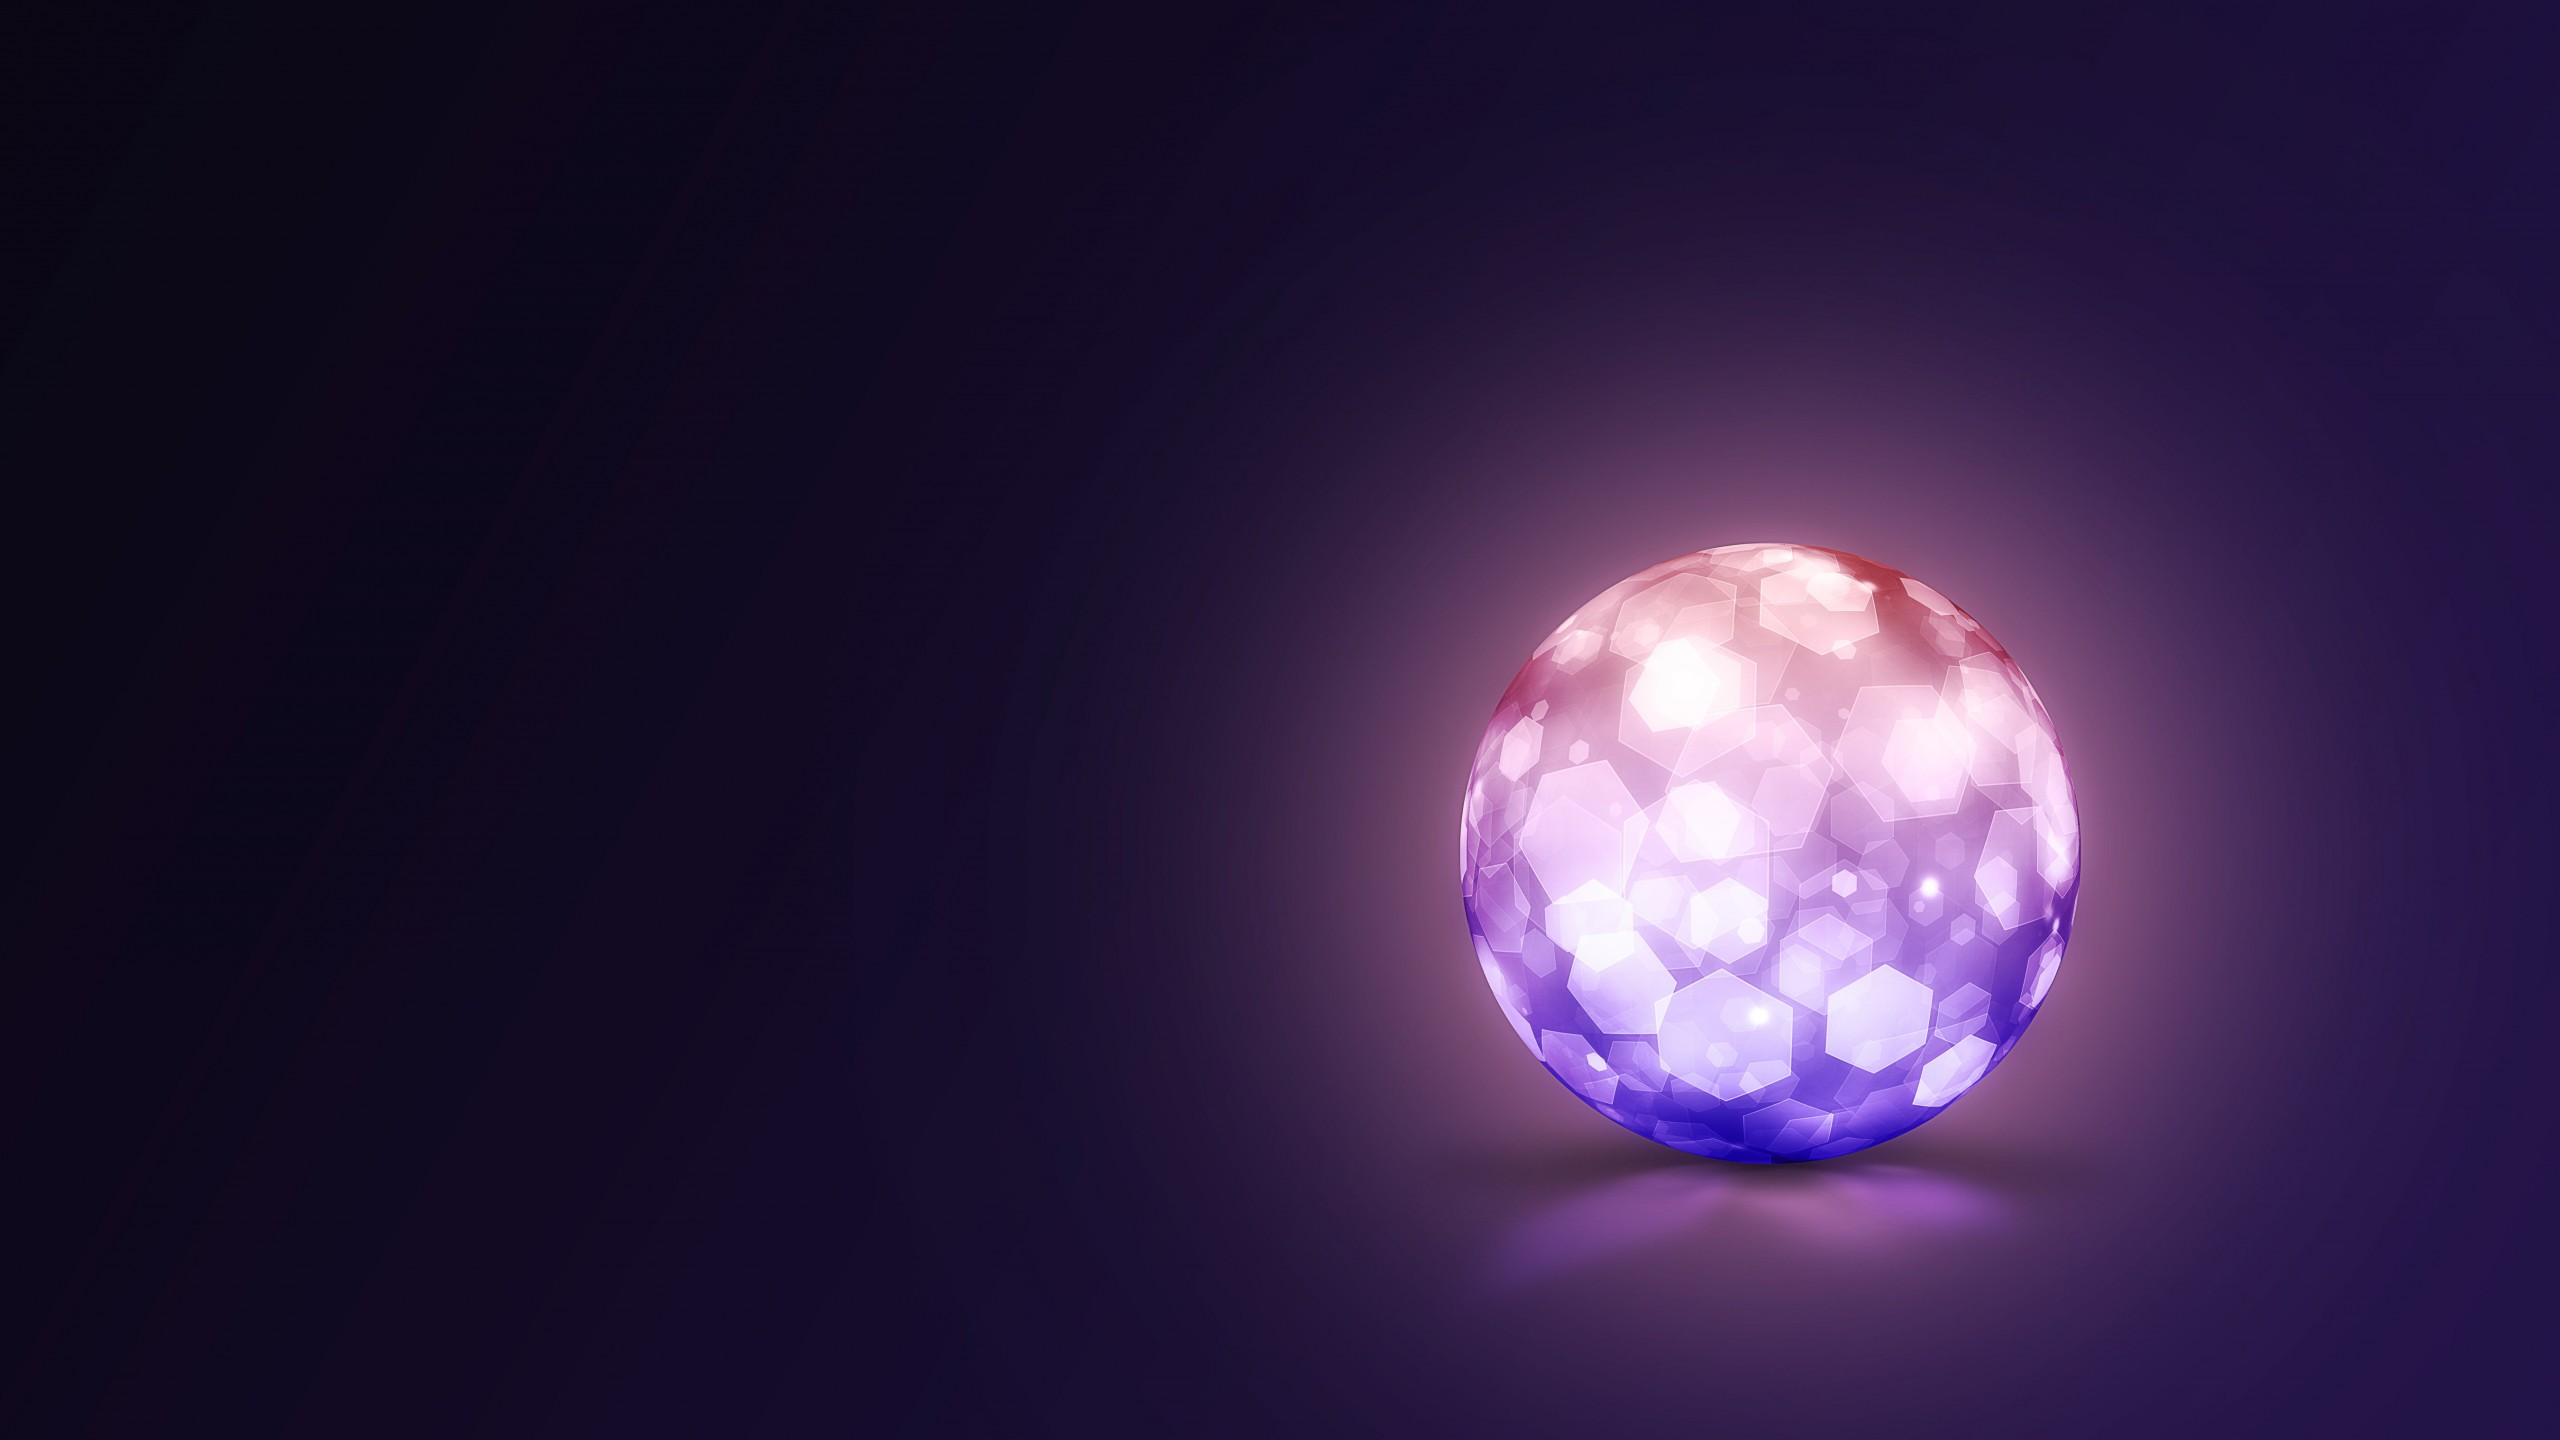 Lightning Ball Wallpaper for Desktop 2560x1440